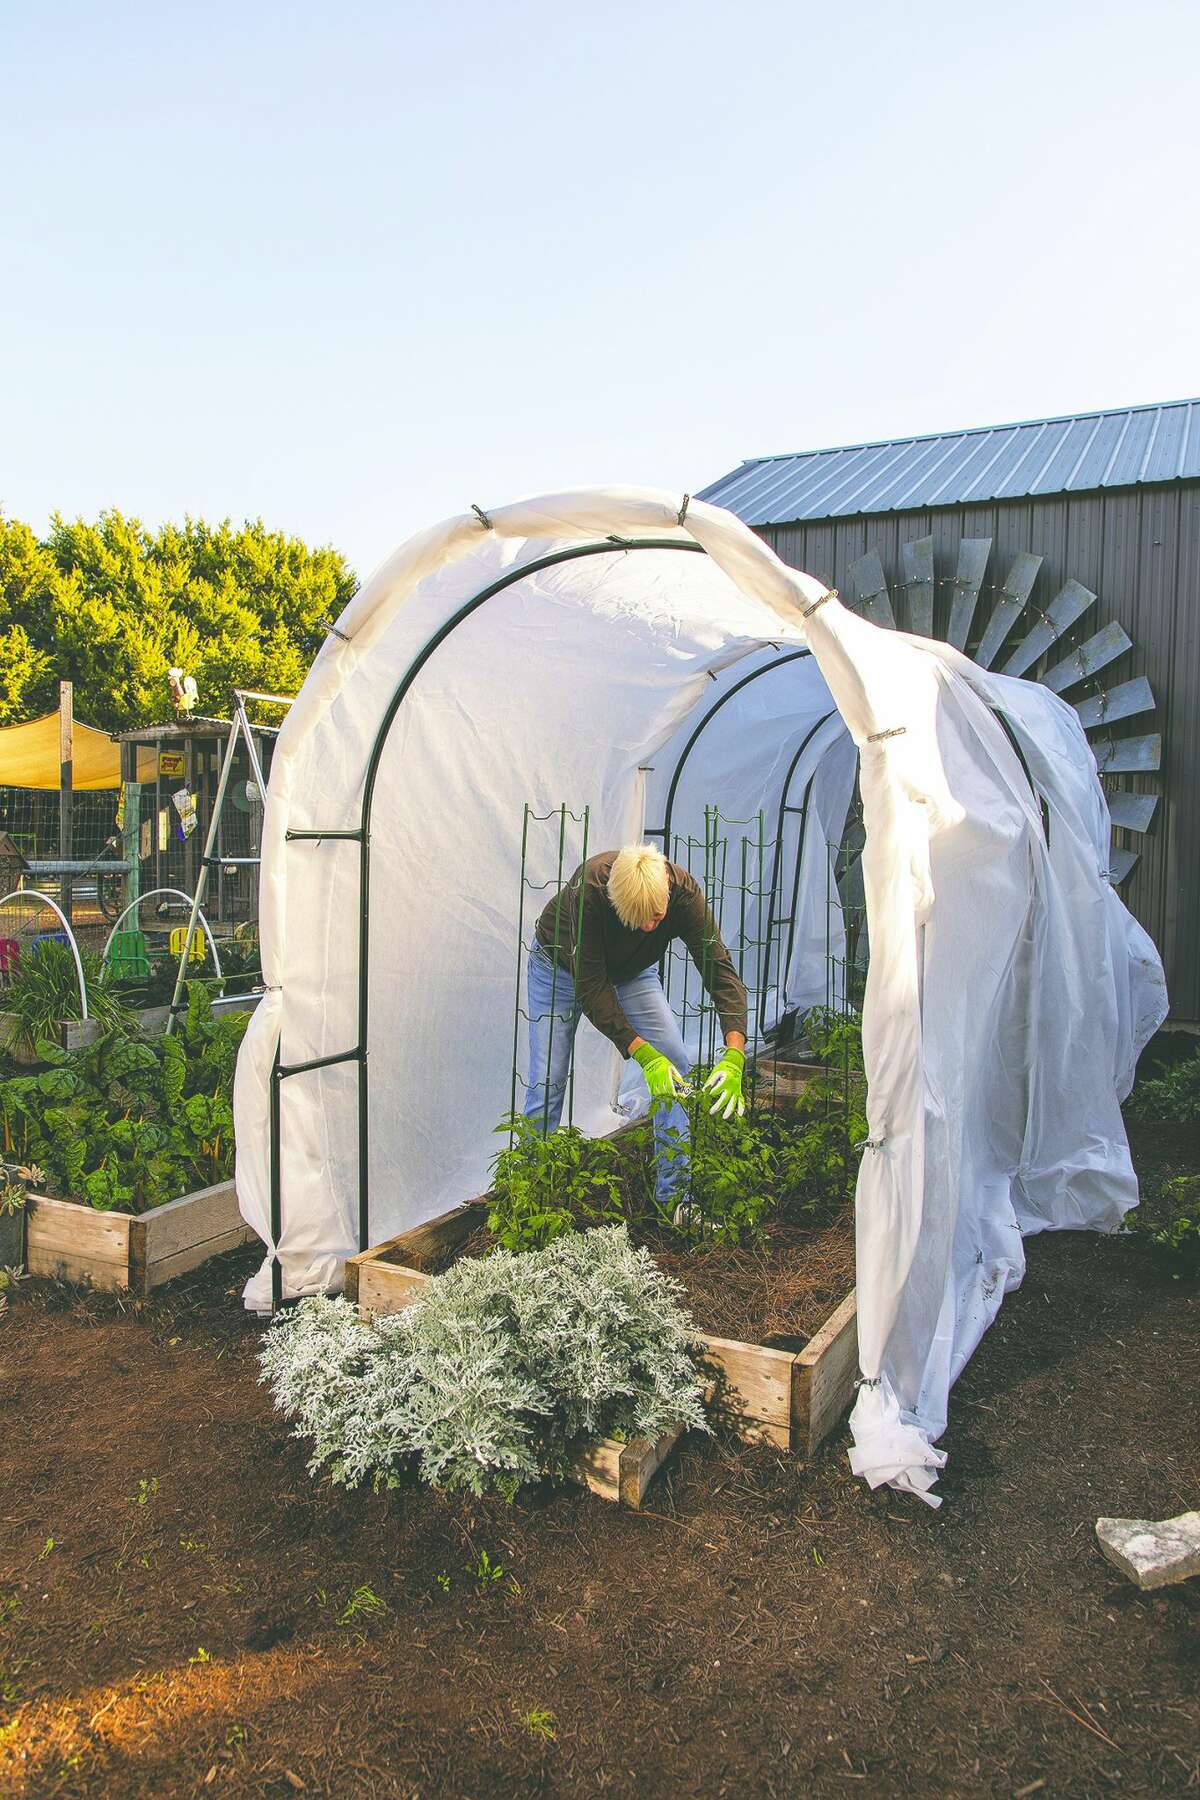 High tunnel systems with hoops and row covers work well on garden beds filled with large plants, allowing easy access for harvesting while protecting the plants.